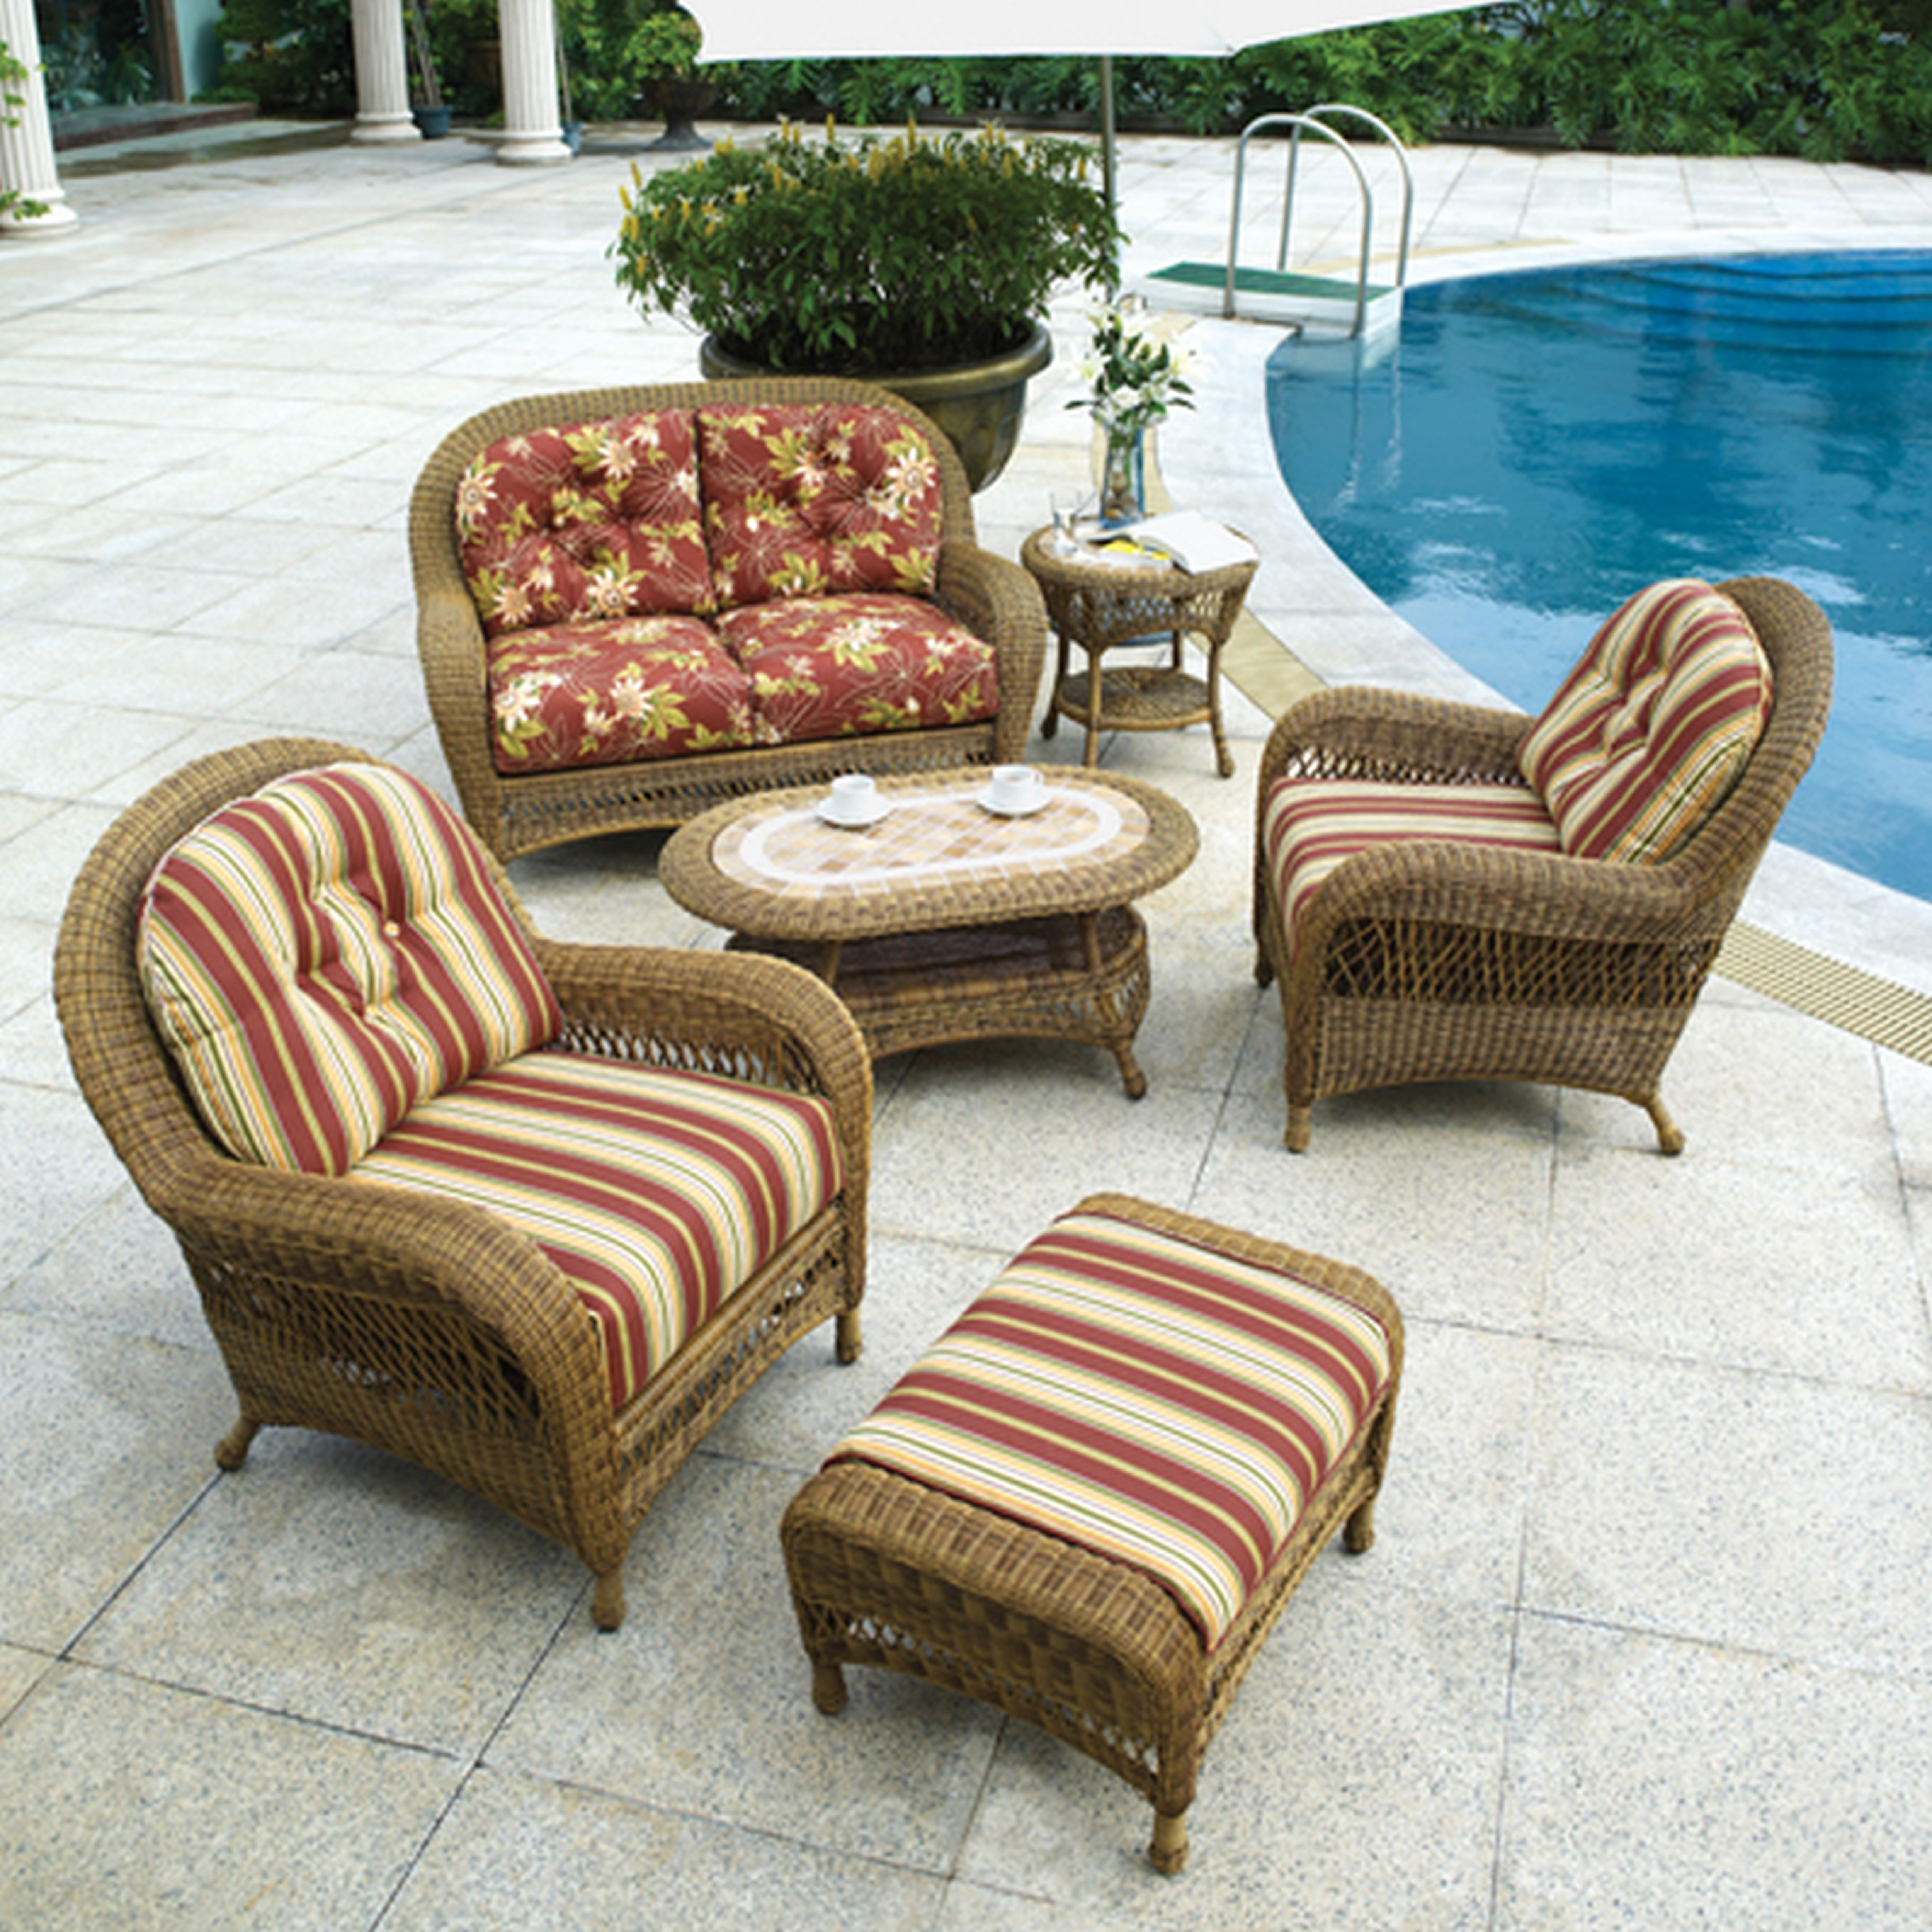 Chair : Magnificent Wicker Chair With Ottoman Additional Styles Of Intended For Latest Patio Conversation Sets With Ottoman (View 3 of 20)